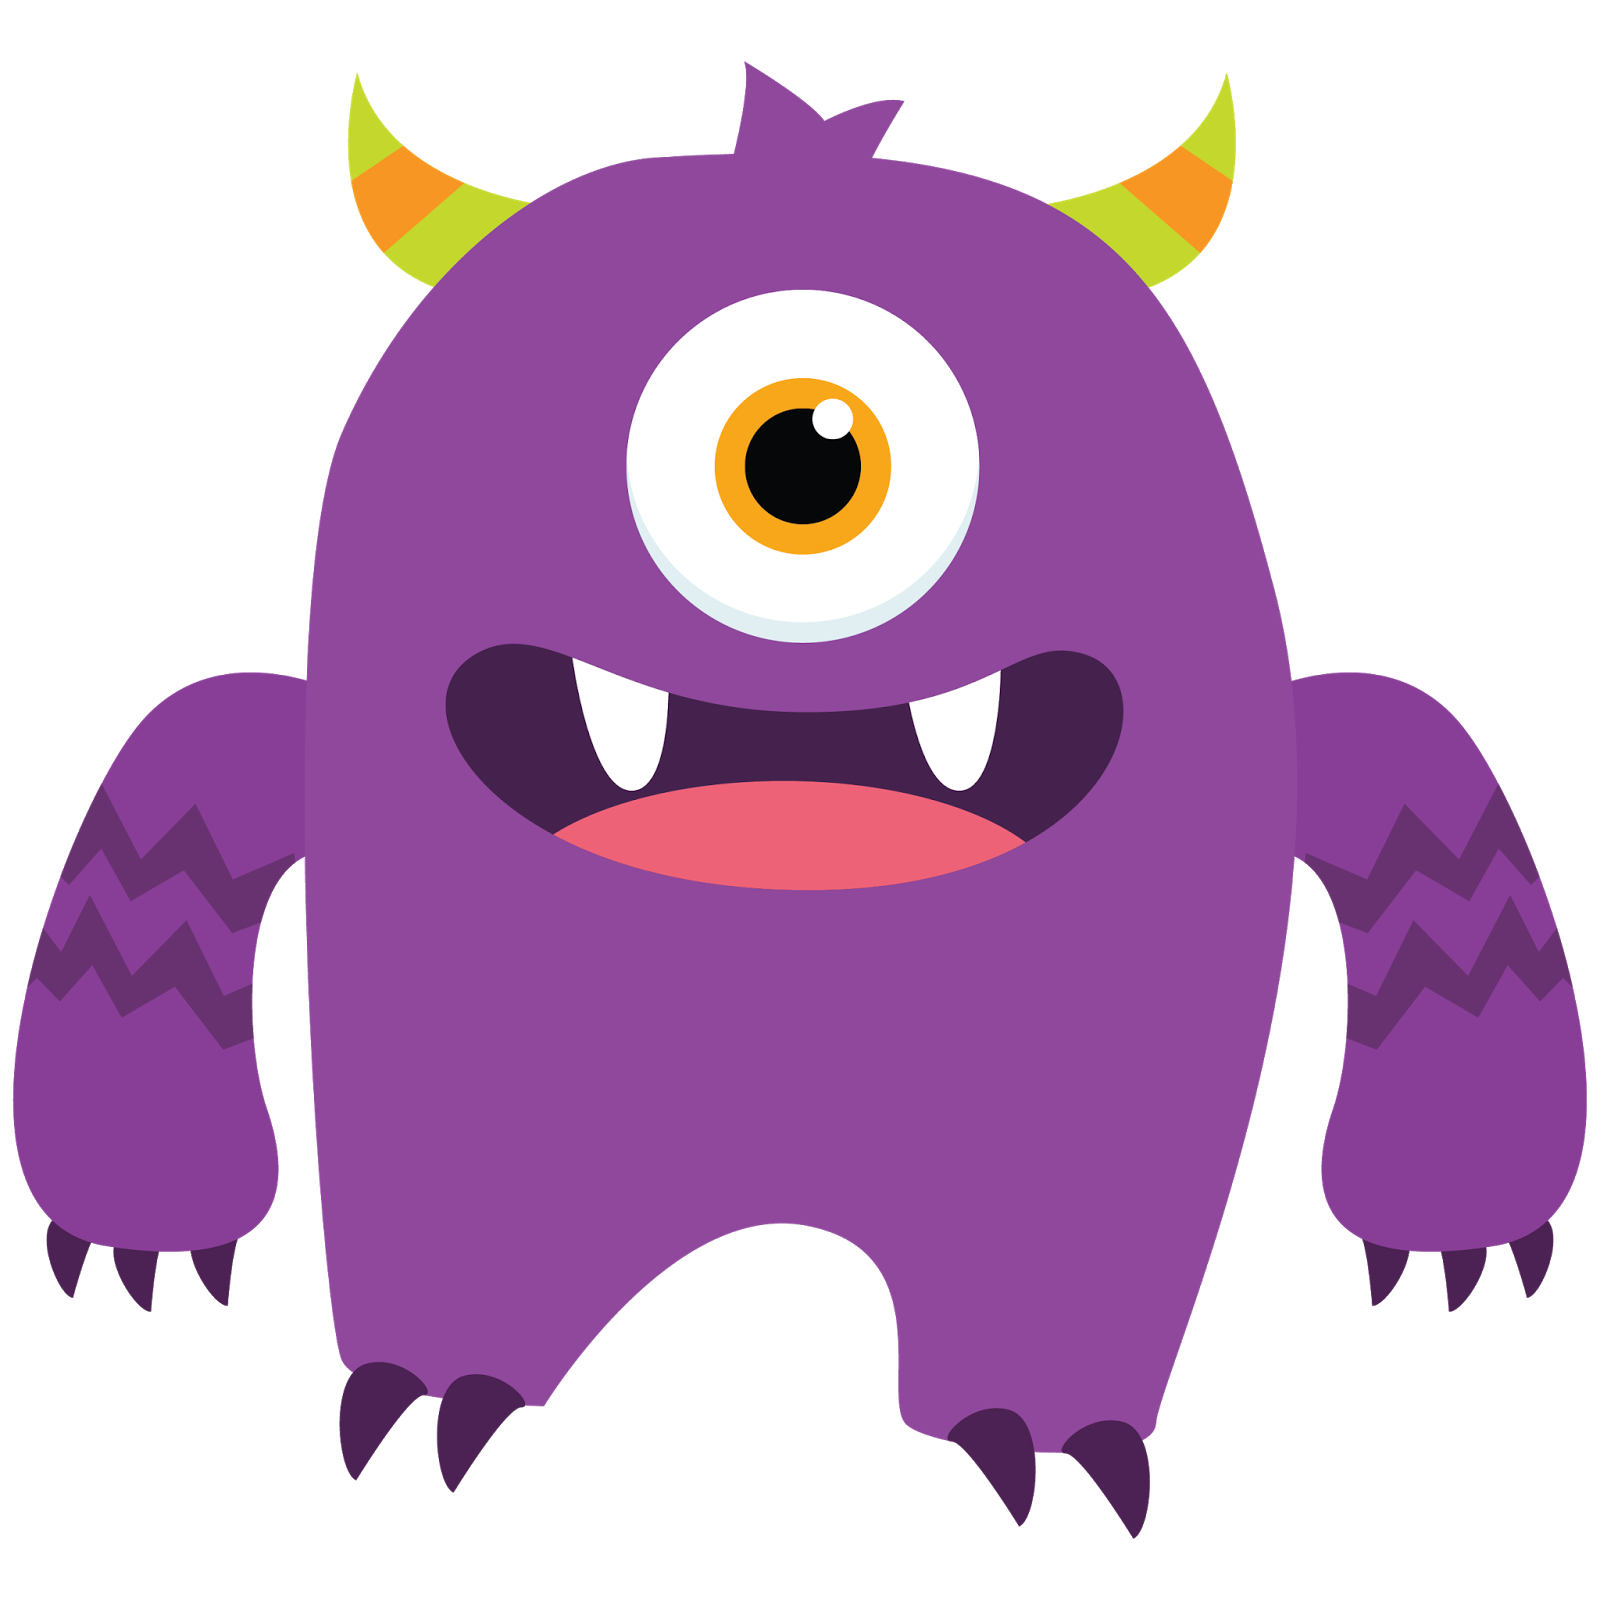 monster clipart at getdrawings com free for personal use monster rh getdrawings com monster clipart images monster clipart images